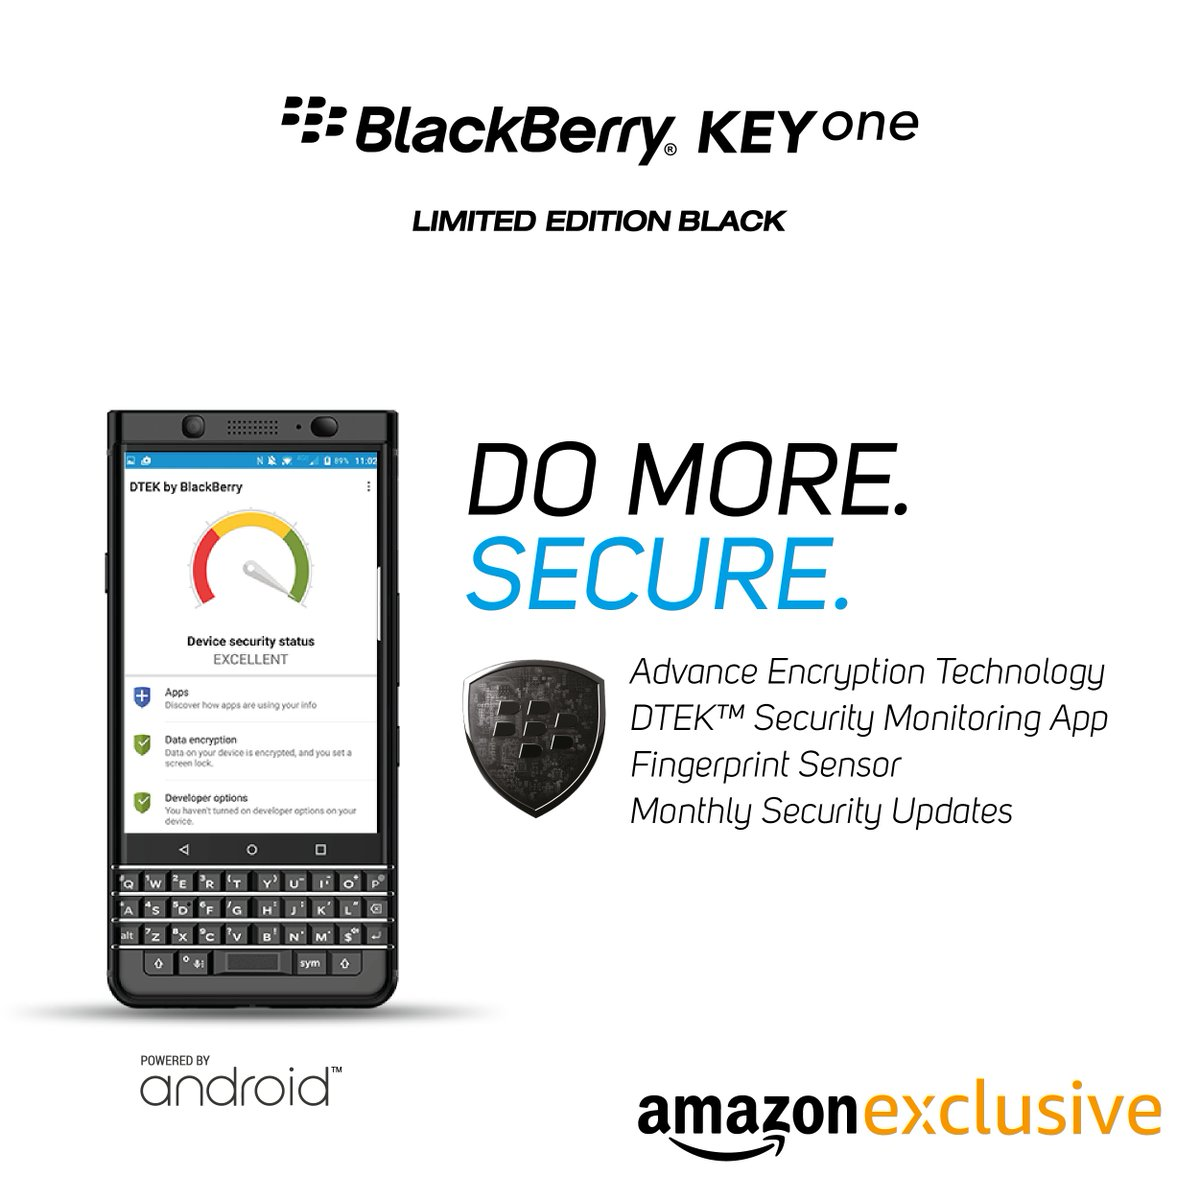 BlackBerry Mobile IN on Twitter: